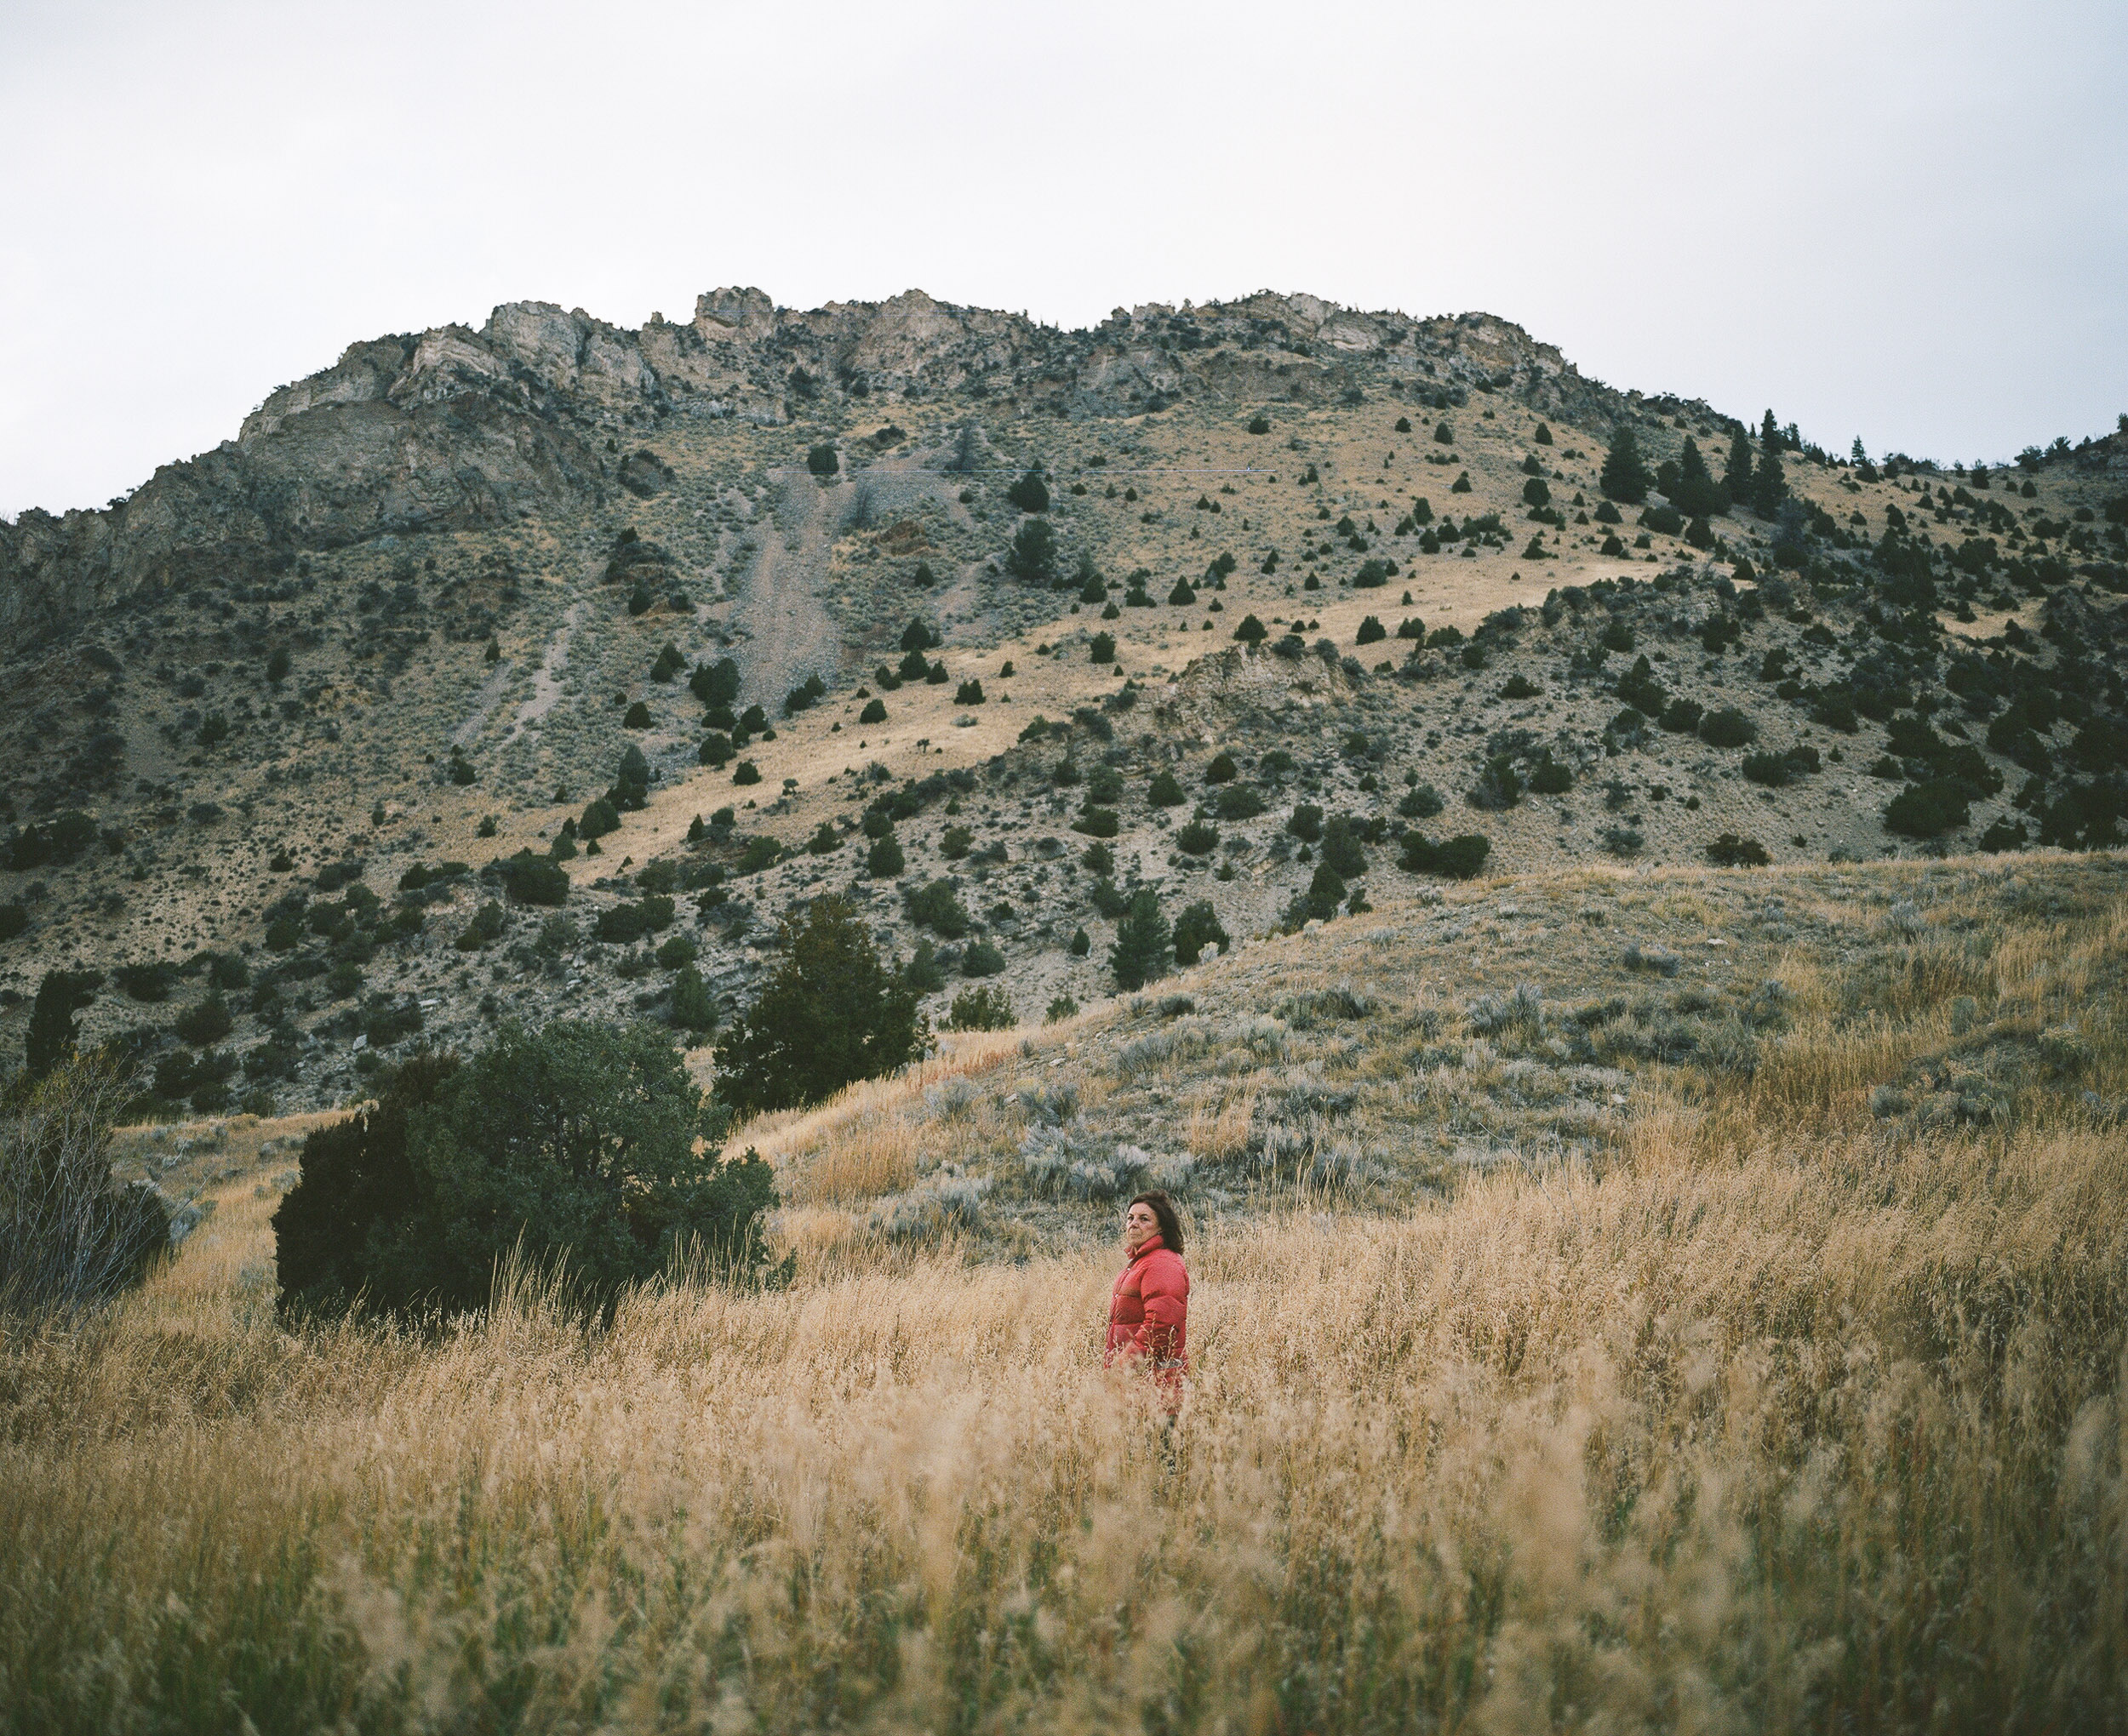 Woman in a red jacket standing in a field with a Mountain behind her.